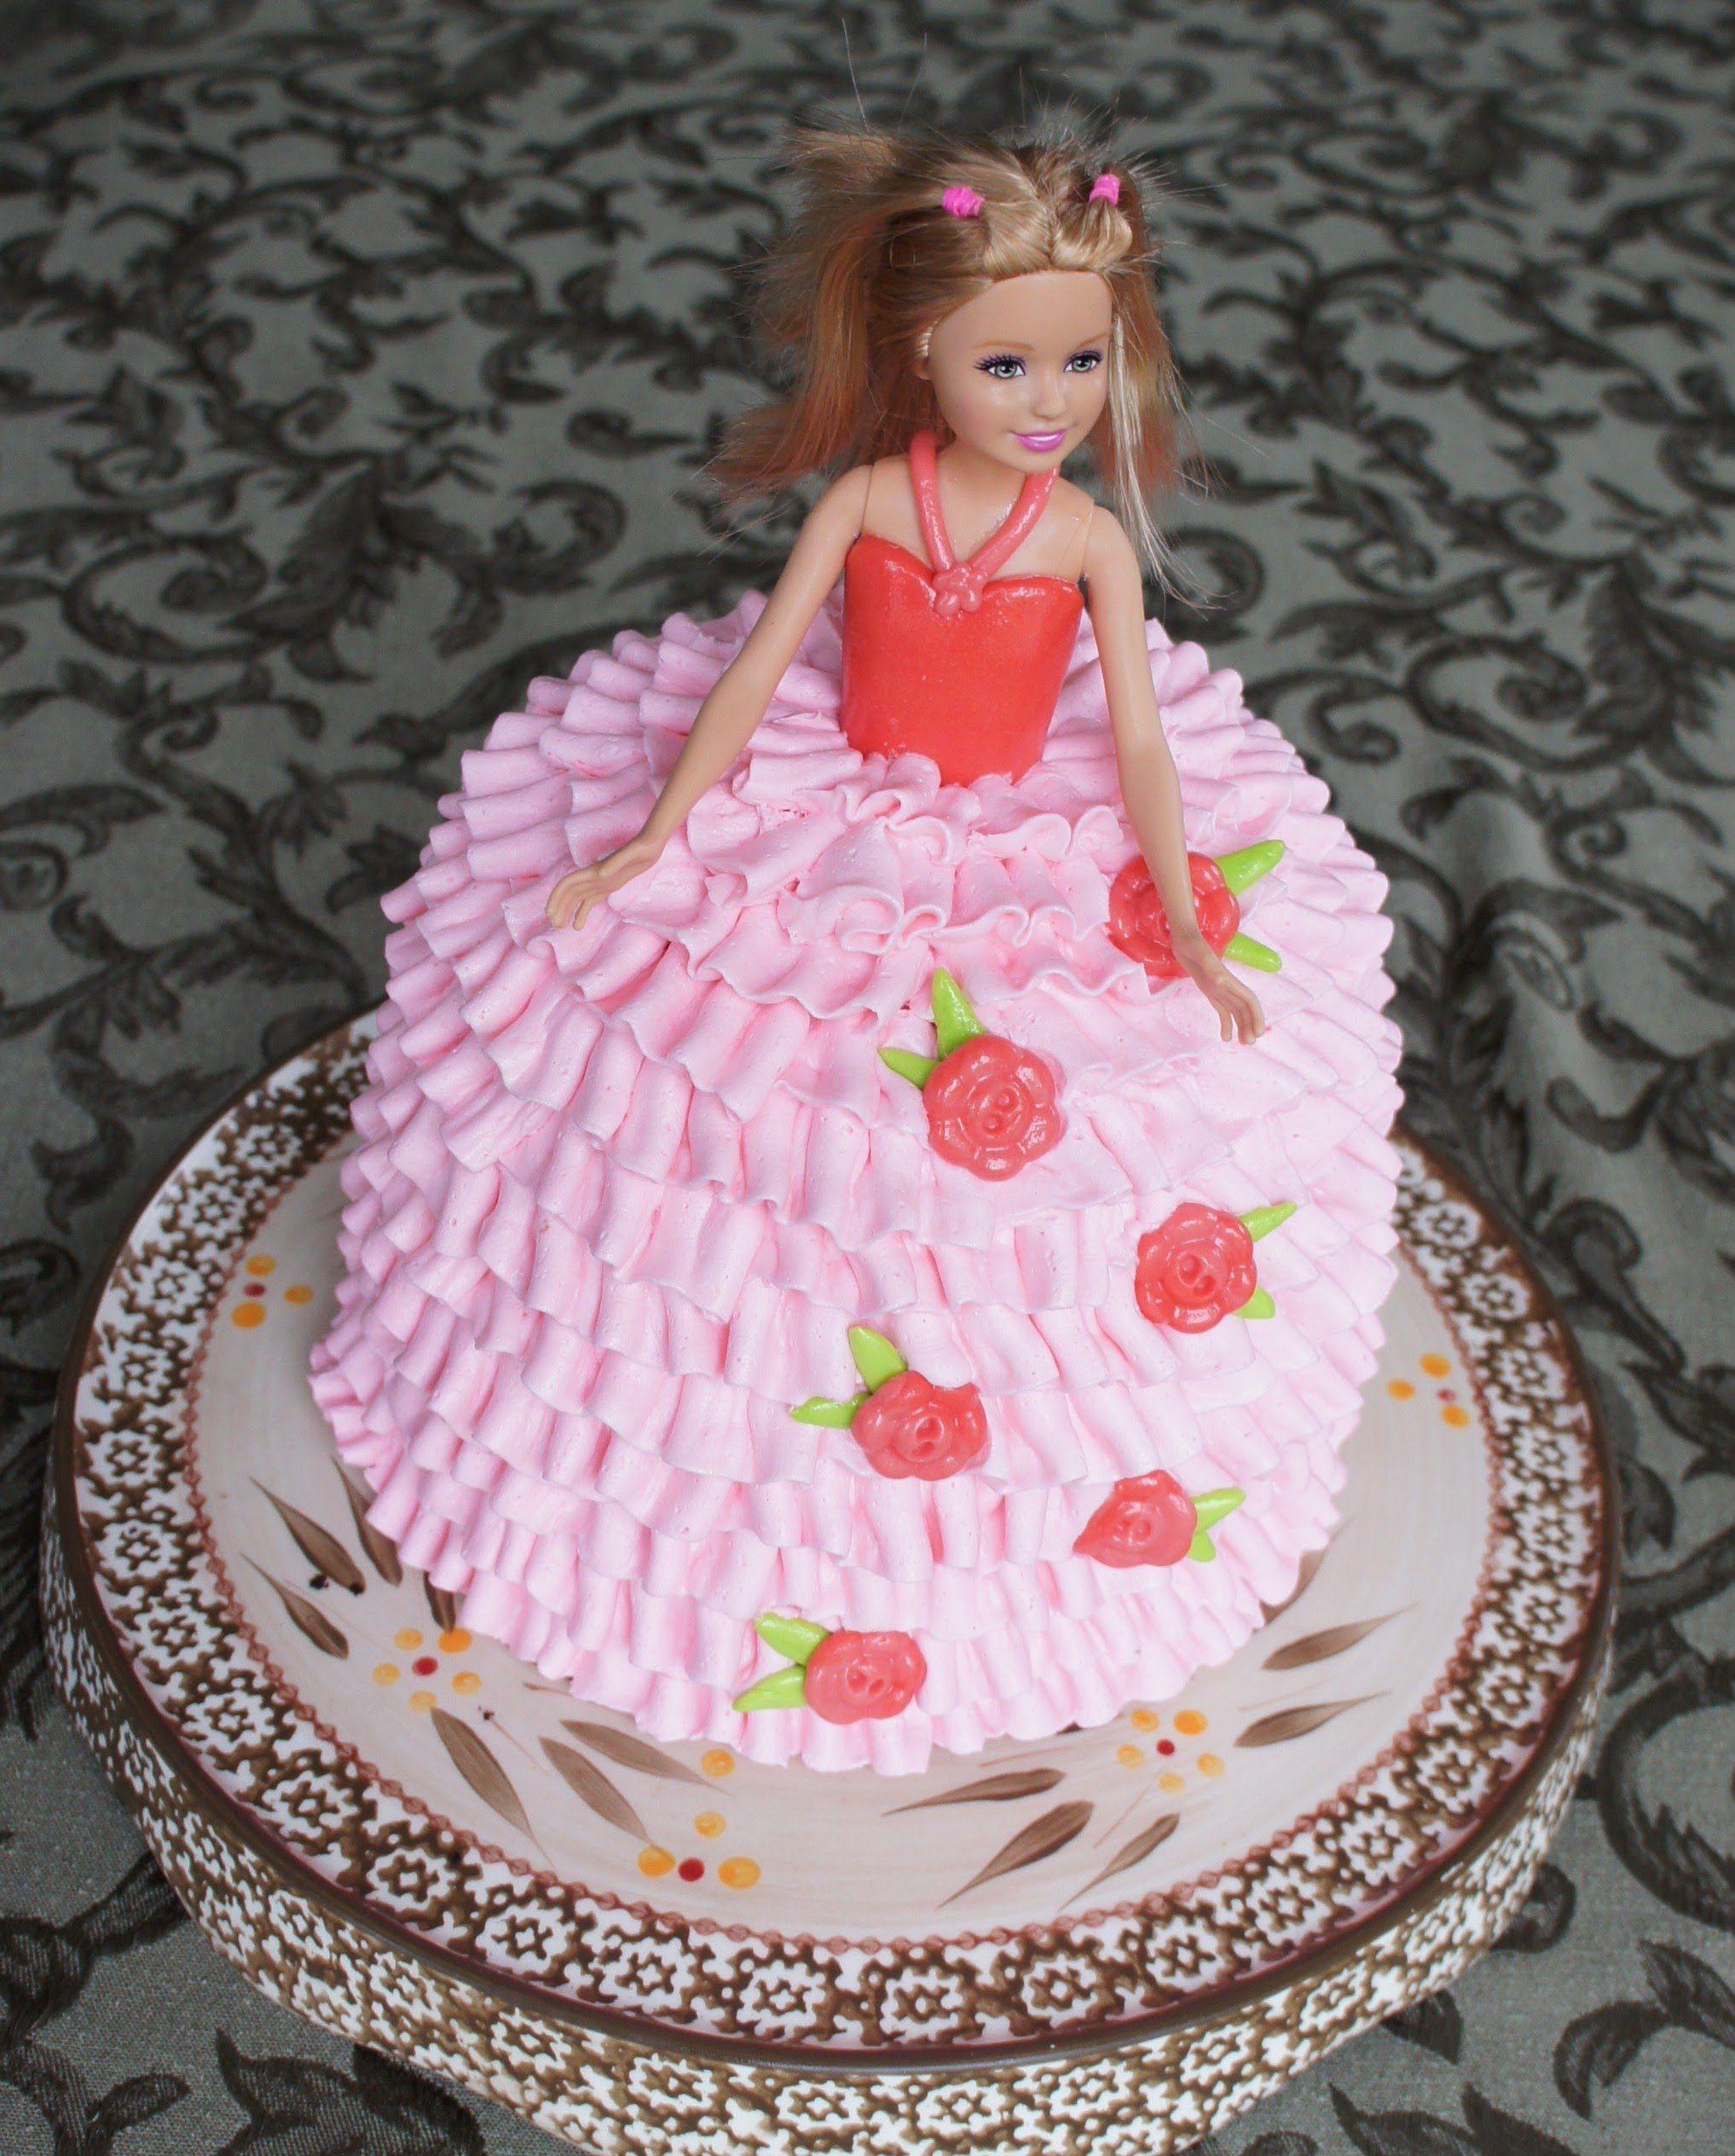 How to make a barbie doll birthday cake Montreal Confections this